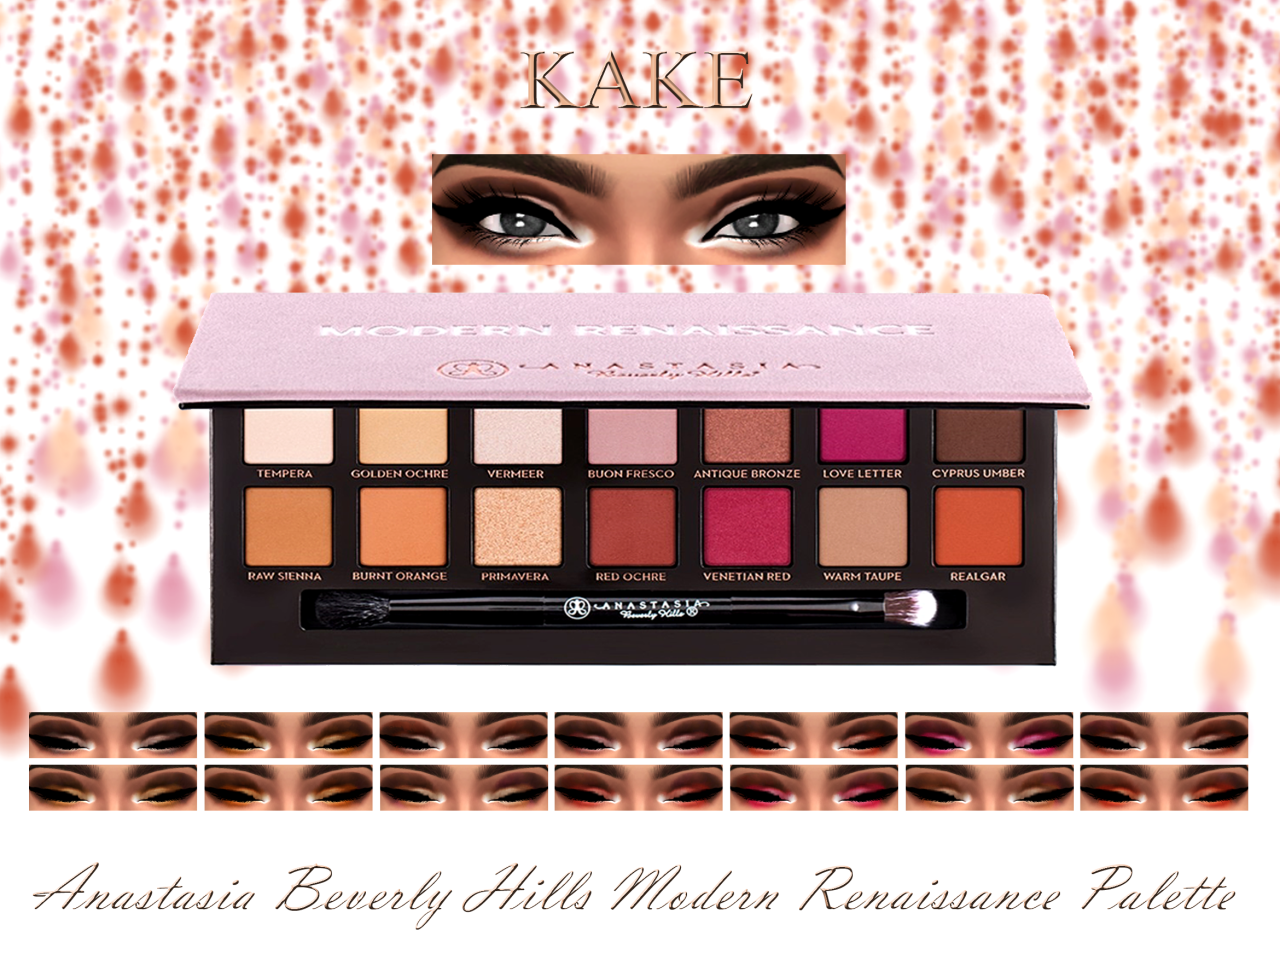 Tavolozza trucchi ~ Anastasia beverly hills modern renaissance palette think we would